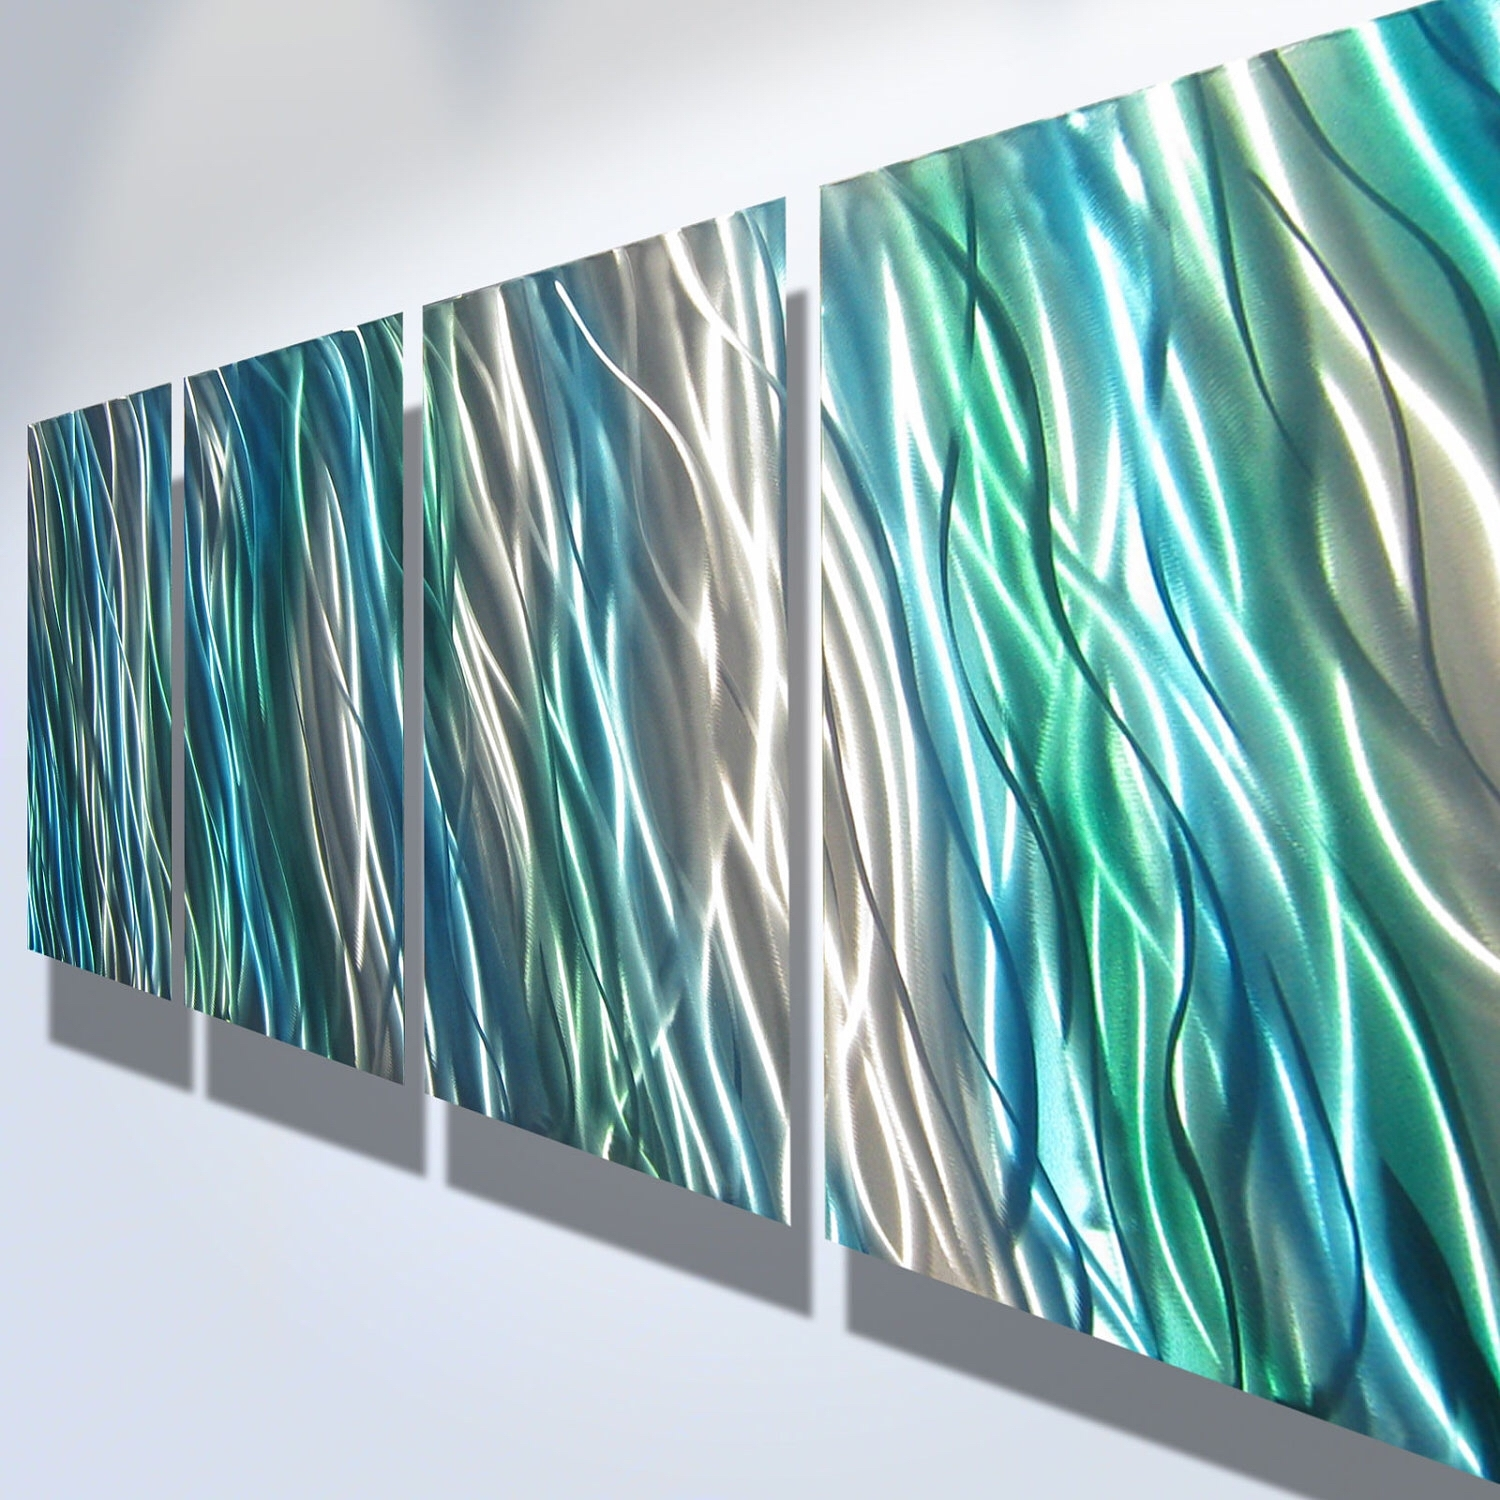 Metal Wall Art Decor Abstract Contemporary Modern Sculpture Throughout Current Abstract Outdoor Metal Wall Art (View 6 of 14)